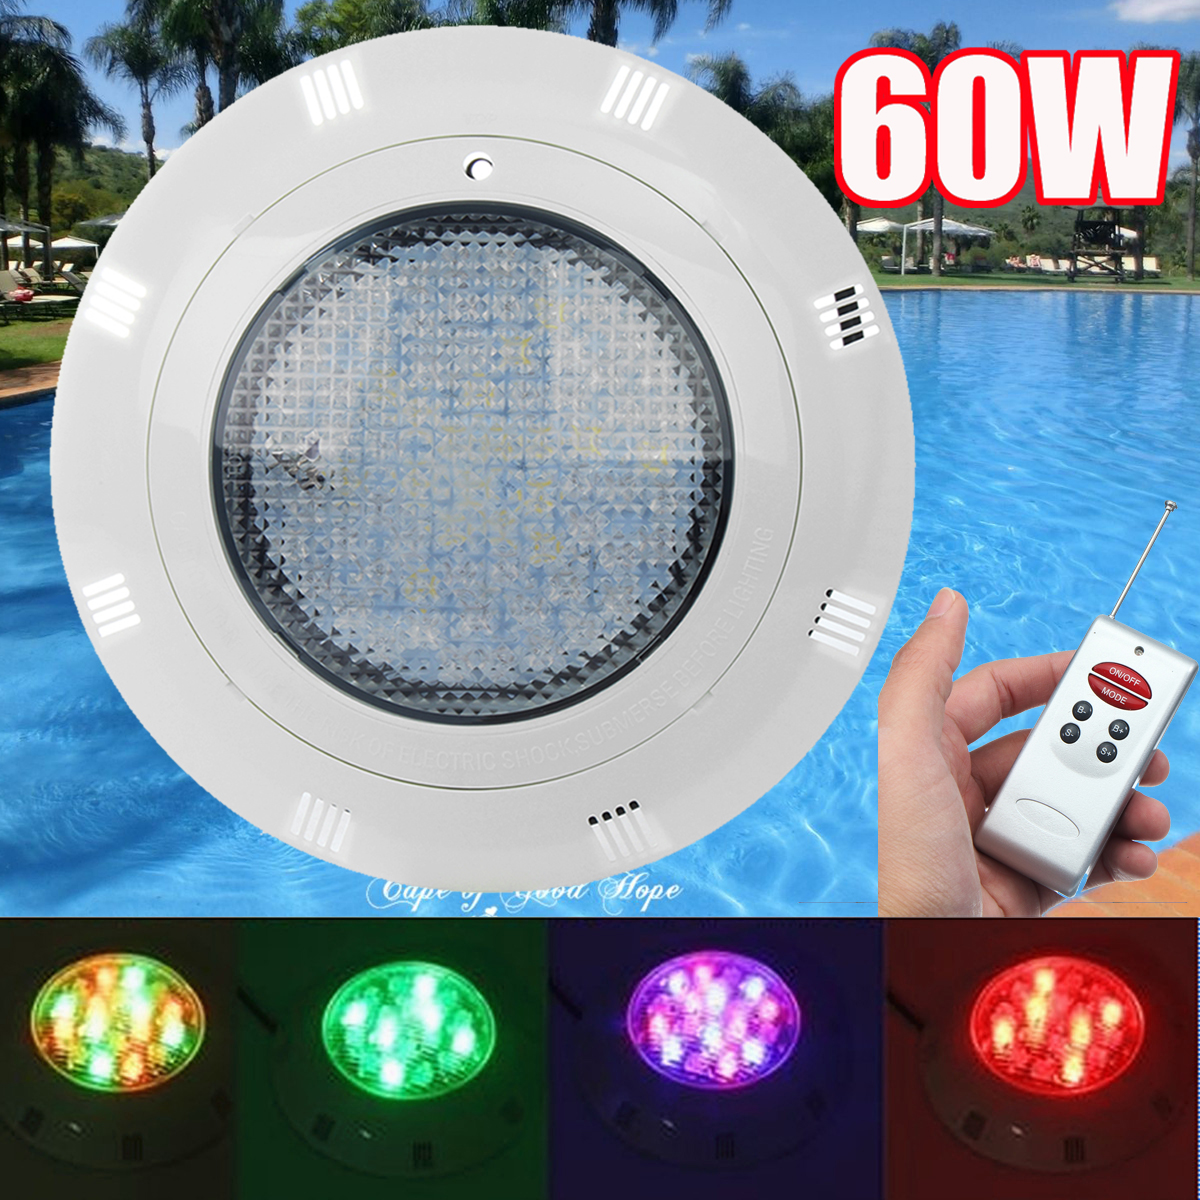 Buy 12v 60w ip68 7 color rgb swimming - Led swimming pool lights suppliers ...